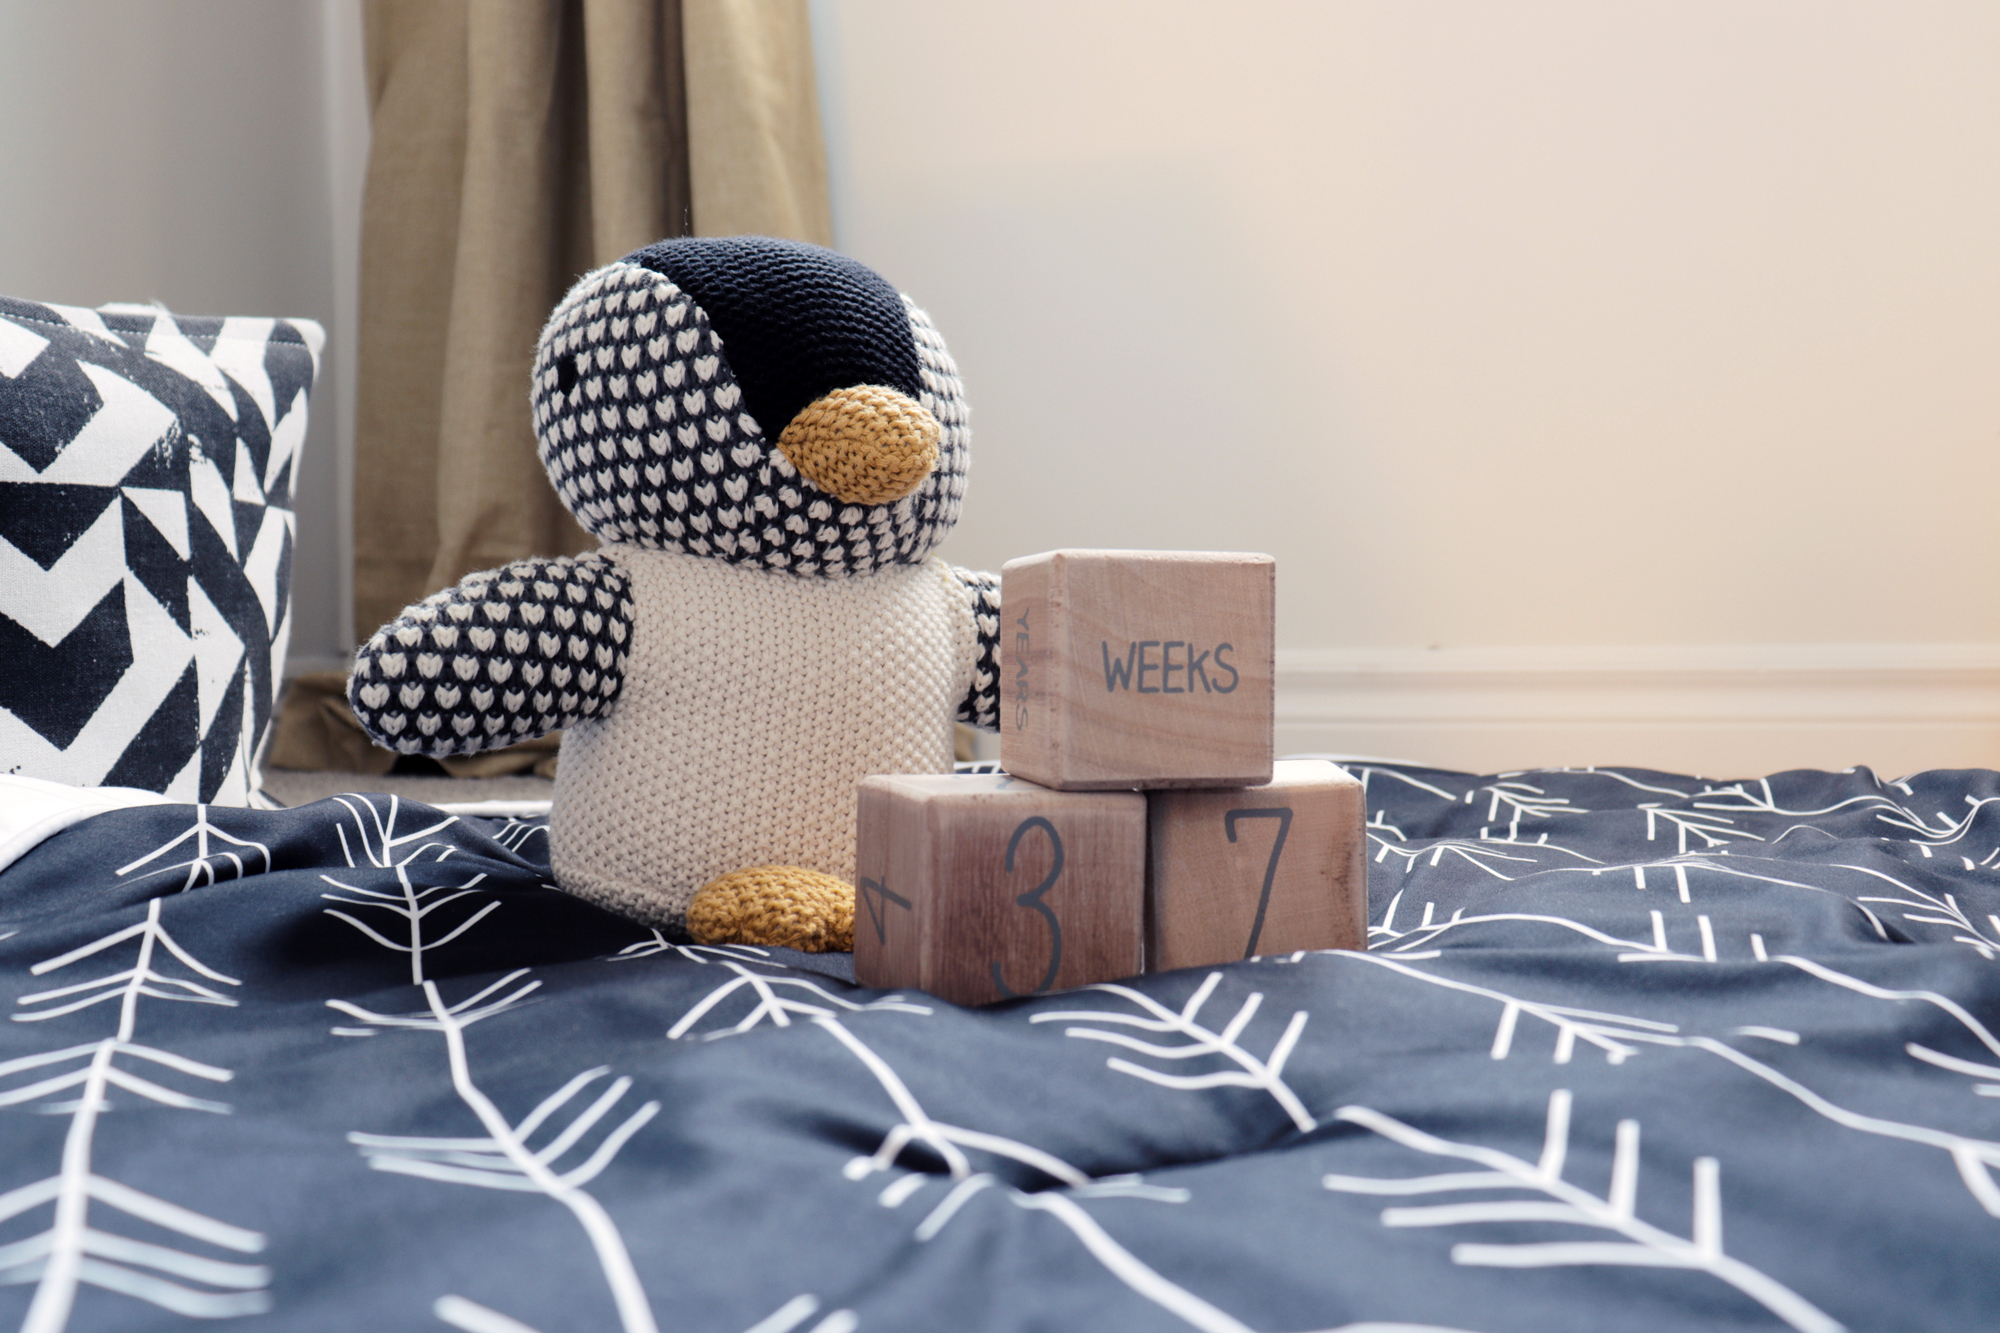 Crocheted penguin stuffed toy and wooden blocks counting the weeks until baby arrives.